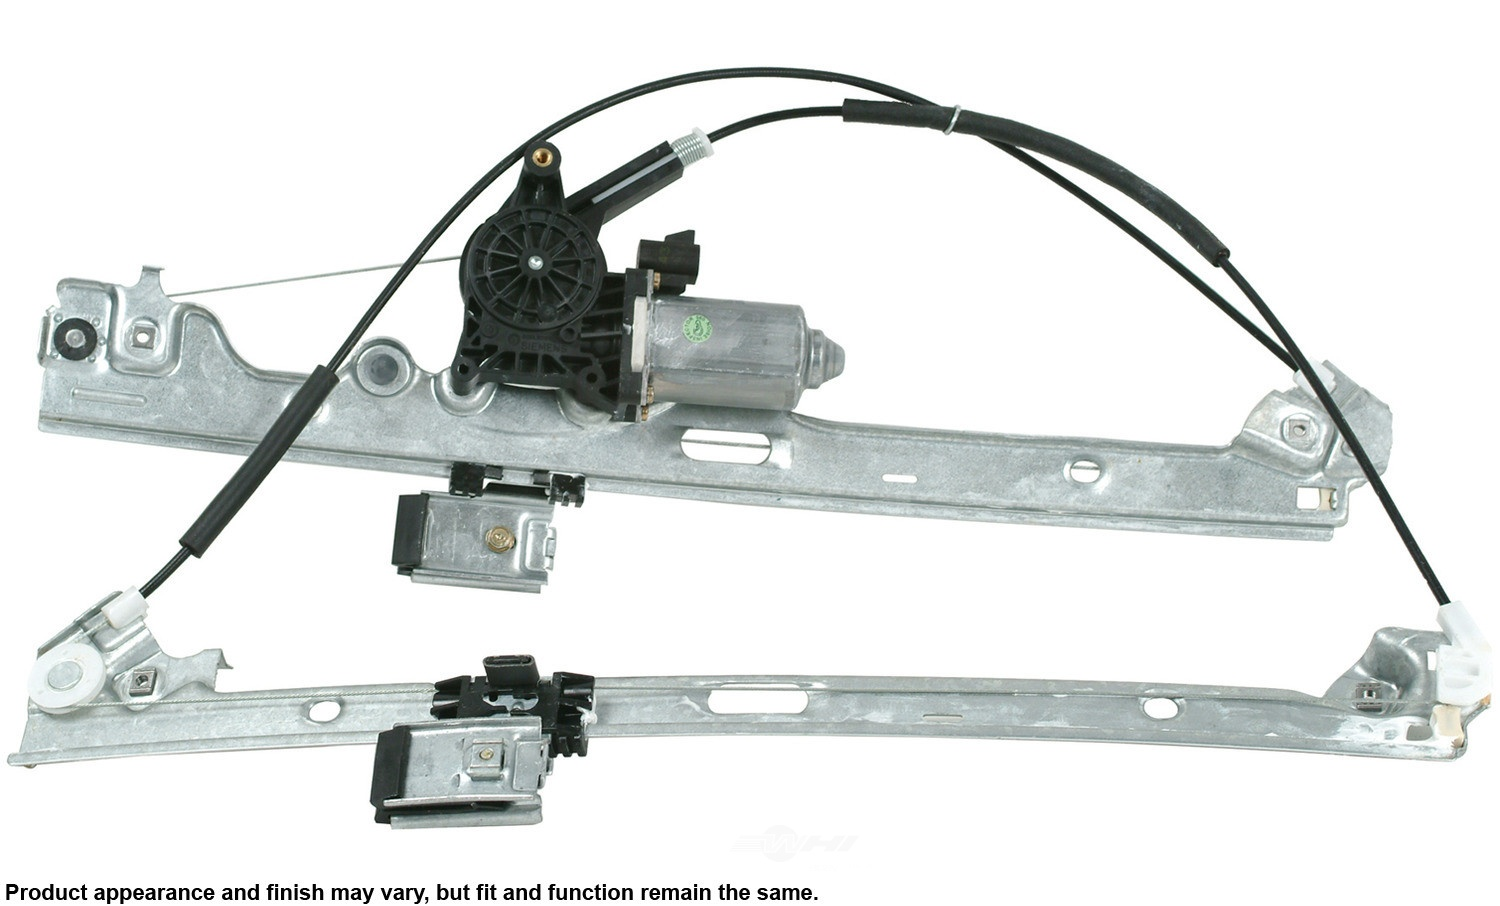 CARDONE NEW - Power Window Motor And Regulator Assembly (Front Right) - A1S 82-179AR